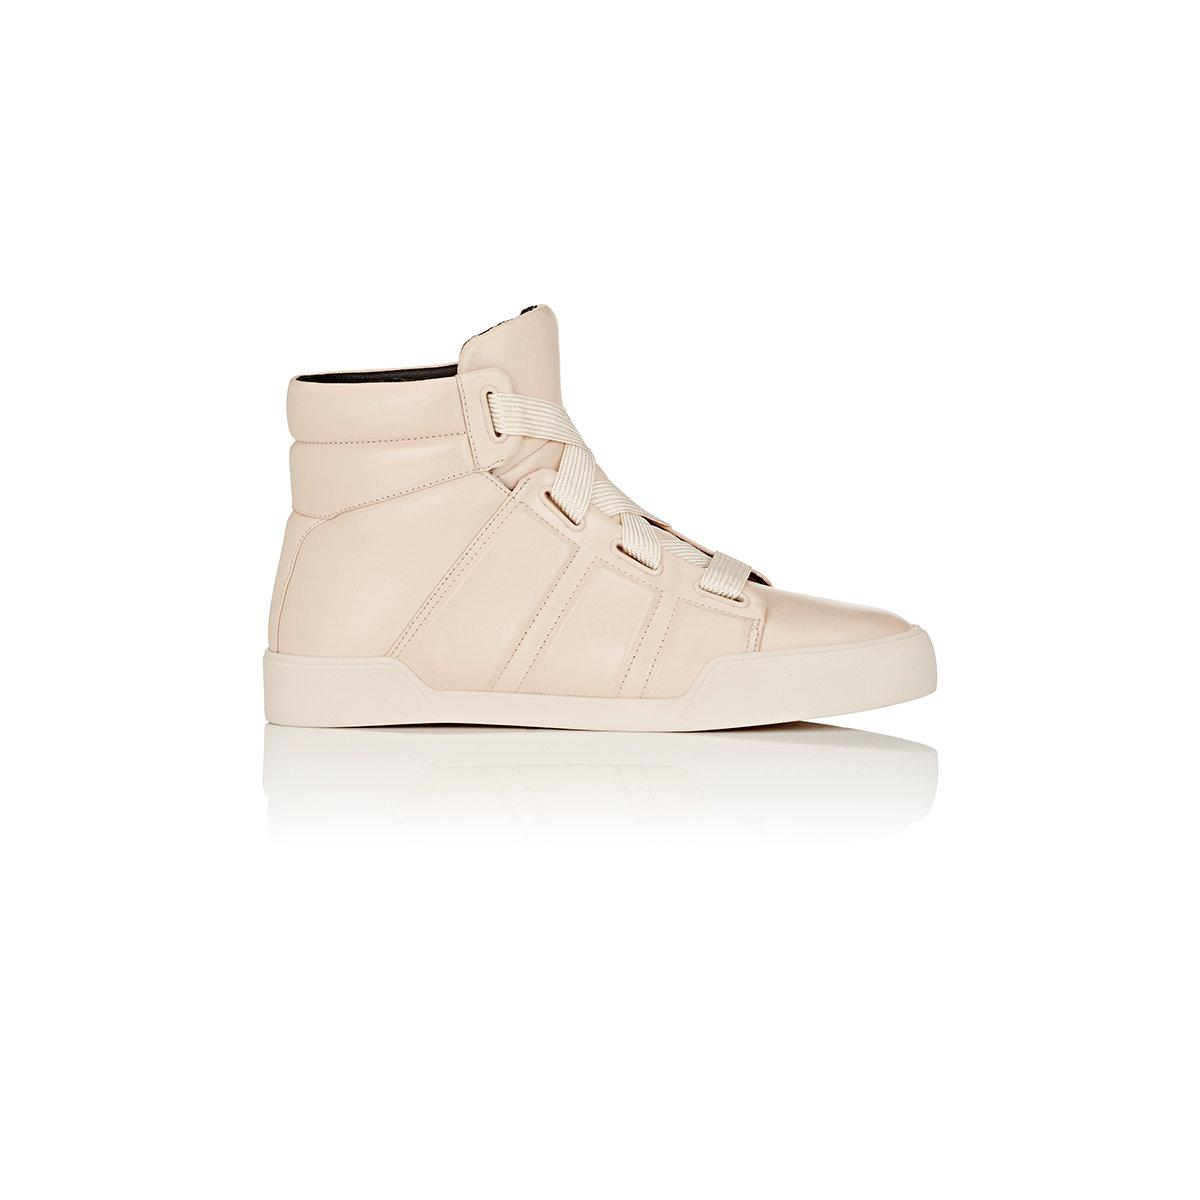 3.1 phillip lim Morgan Leather High in Natural